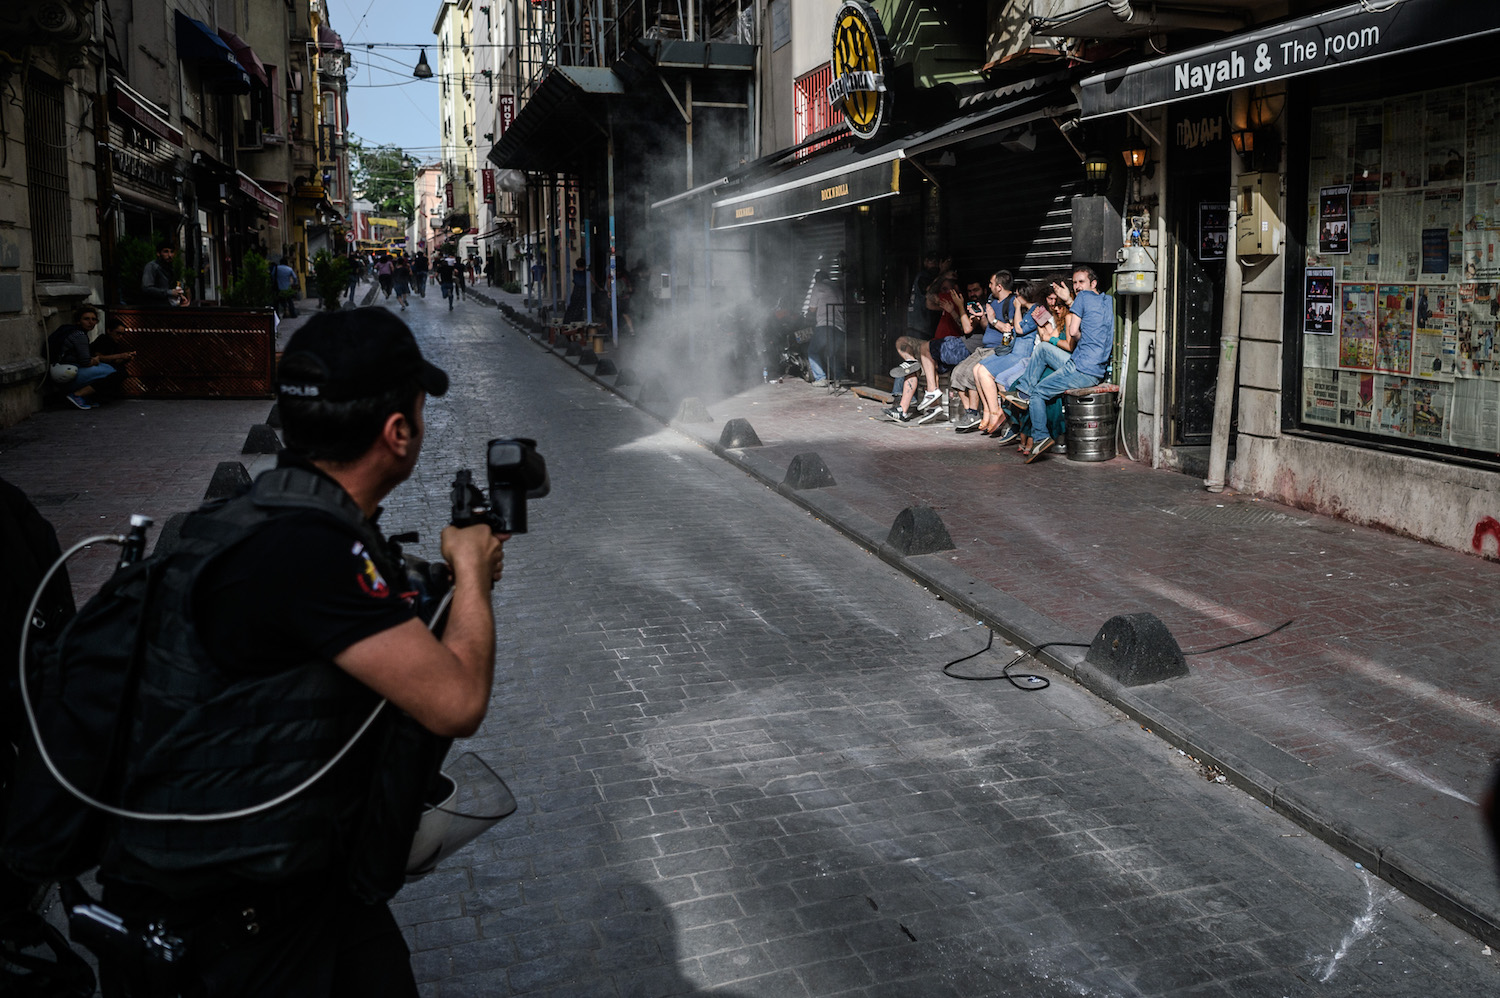 "Turkish anti-riot police officers fire rubber bullets to disperse demonstrators gathered for a rally staged by the LGBT community on Istiklal avenue in Istanbul on June 19, 2016. Turkish riot police fired rubber bullets and tear gas to break up a rally staged by the LGBT community in Istanbul on June 19 in defiance of a ban. Several hundred police surrounded the main Taksim Square -- where all demonstrations have been banned since 2013 -- to prevent the ""Trans Pride"" event taking place during Ramadan. / AFP / OZAN KOSE (Photo credit should read OZAN KOSE/AFP/Getty Images)"